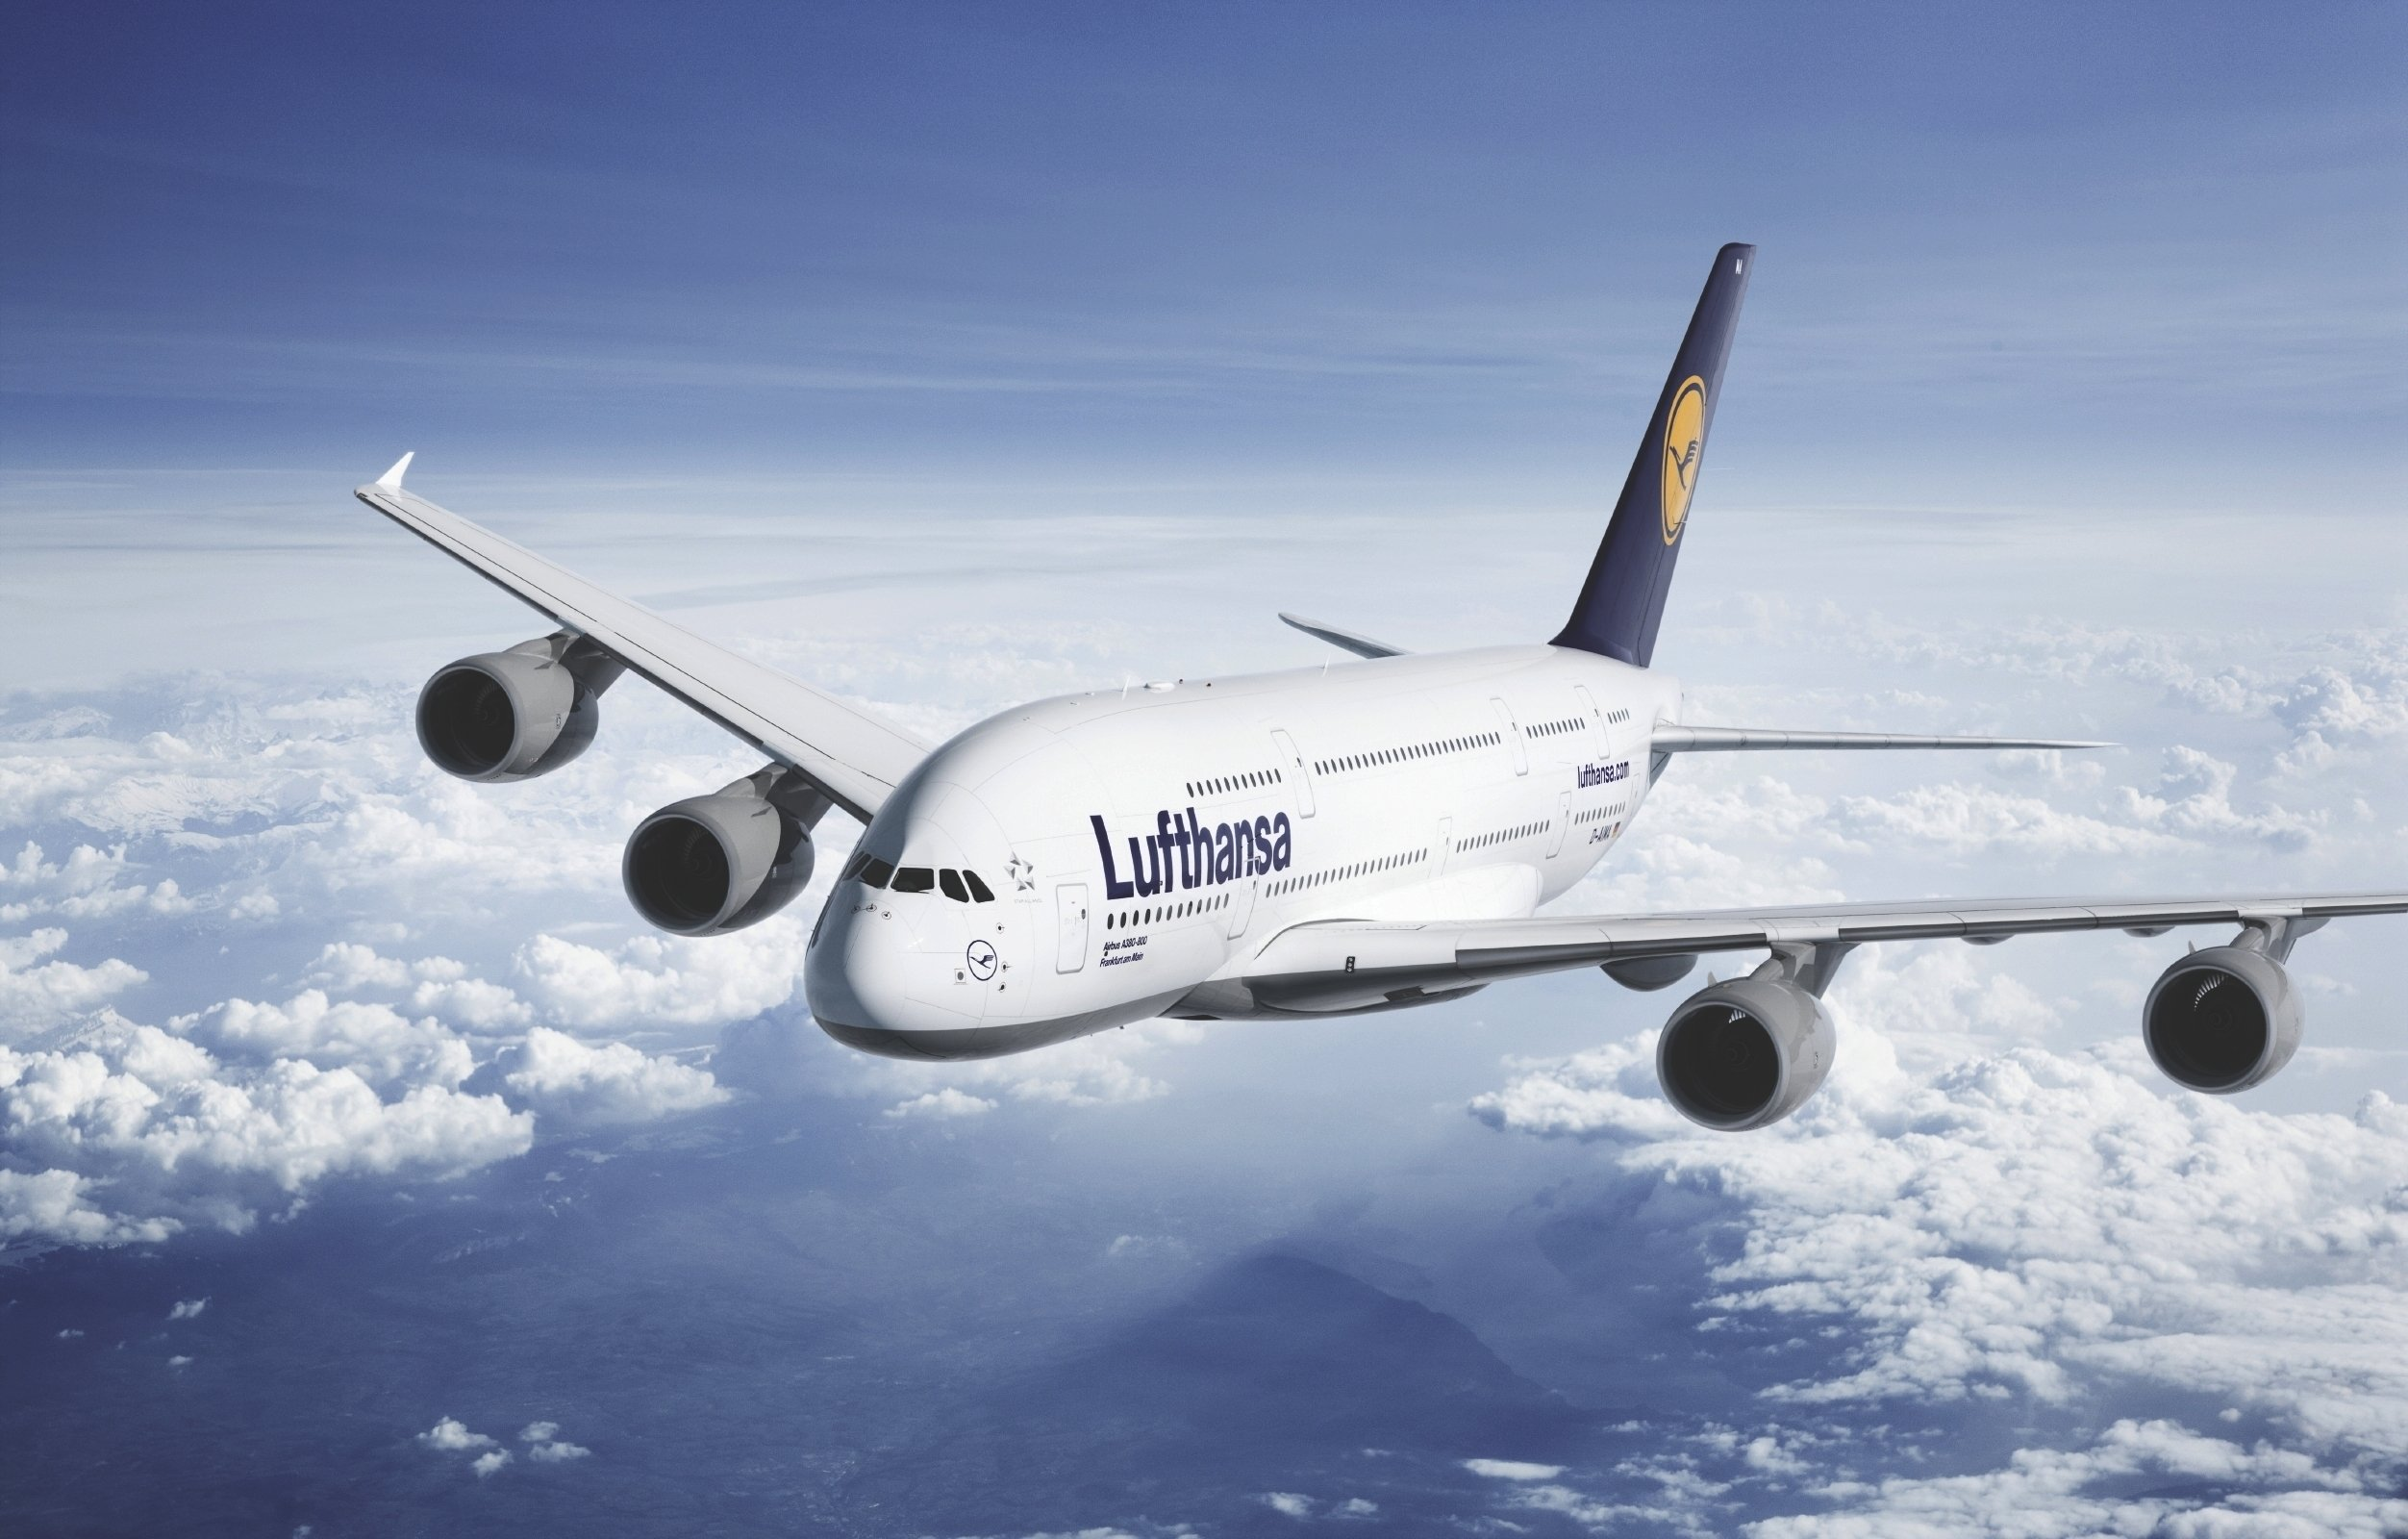 A380 Lufthansa 2504x1600 6107 HD Wallpaper Res 2504x1600 2504x1600